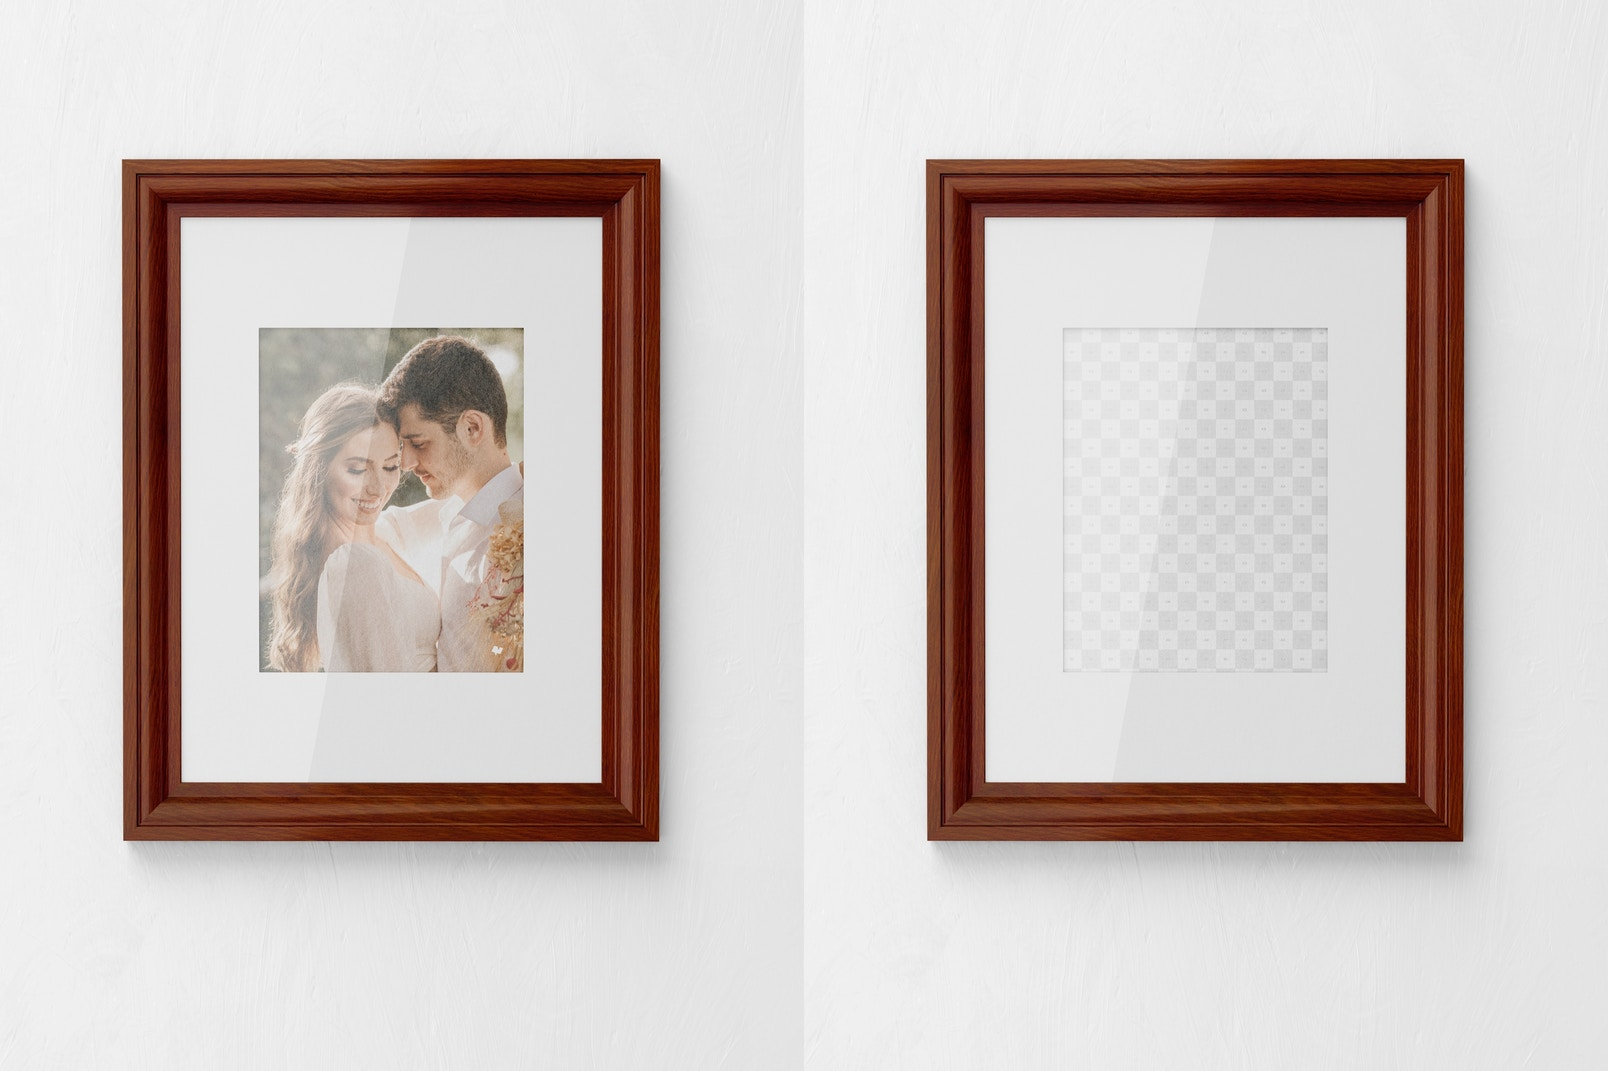 3:4 Photo Frame Mockup, Front View